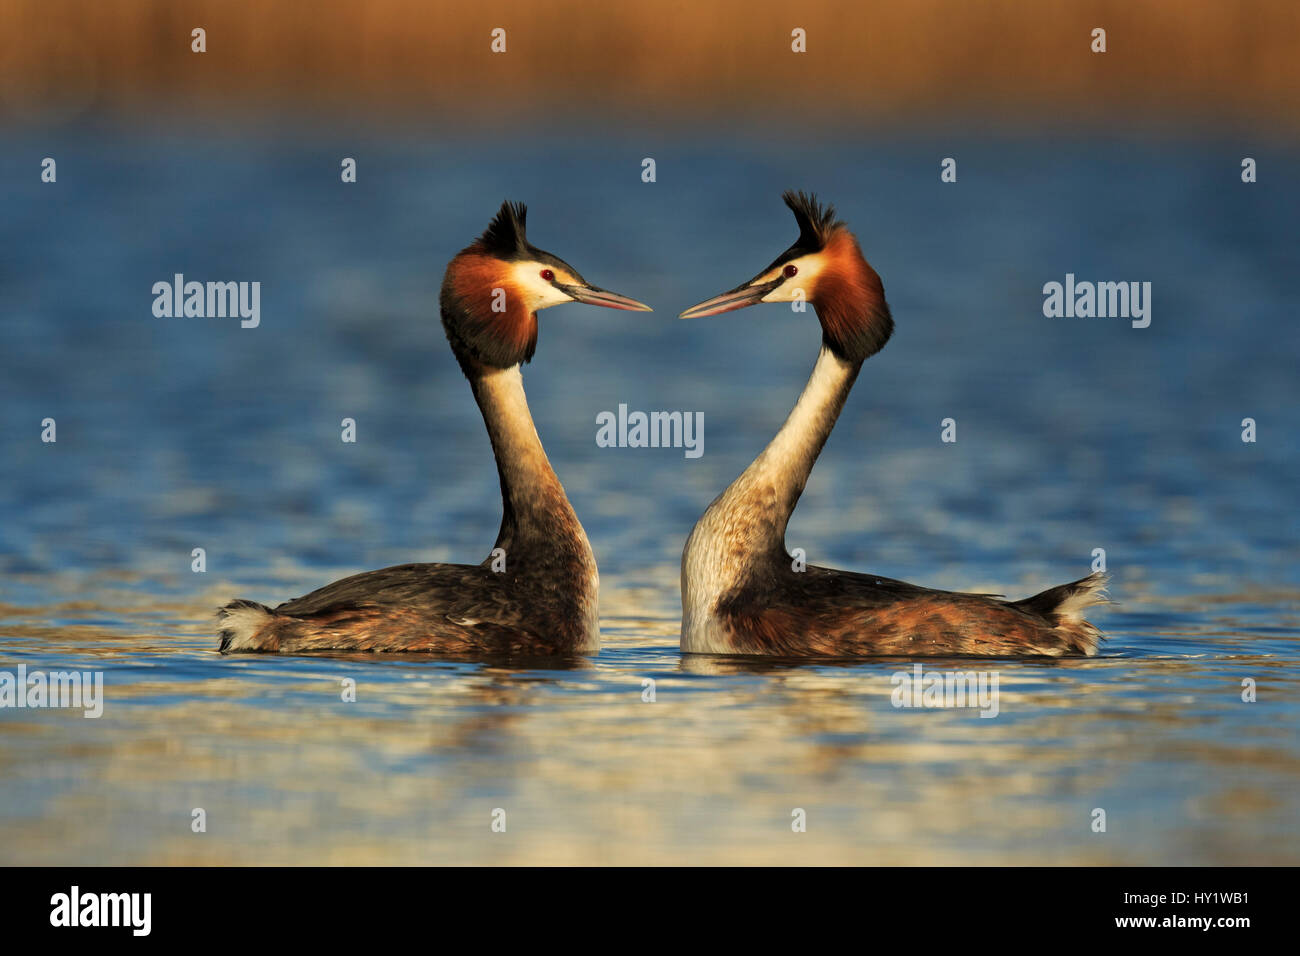 Great crested grebe (Podiceps cristatus cristatus) courtship dance, Cardiff, UK, March. - Stock Image